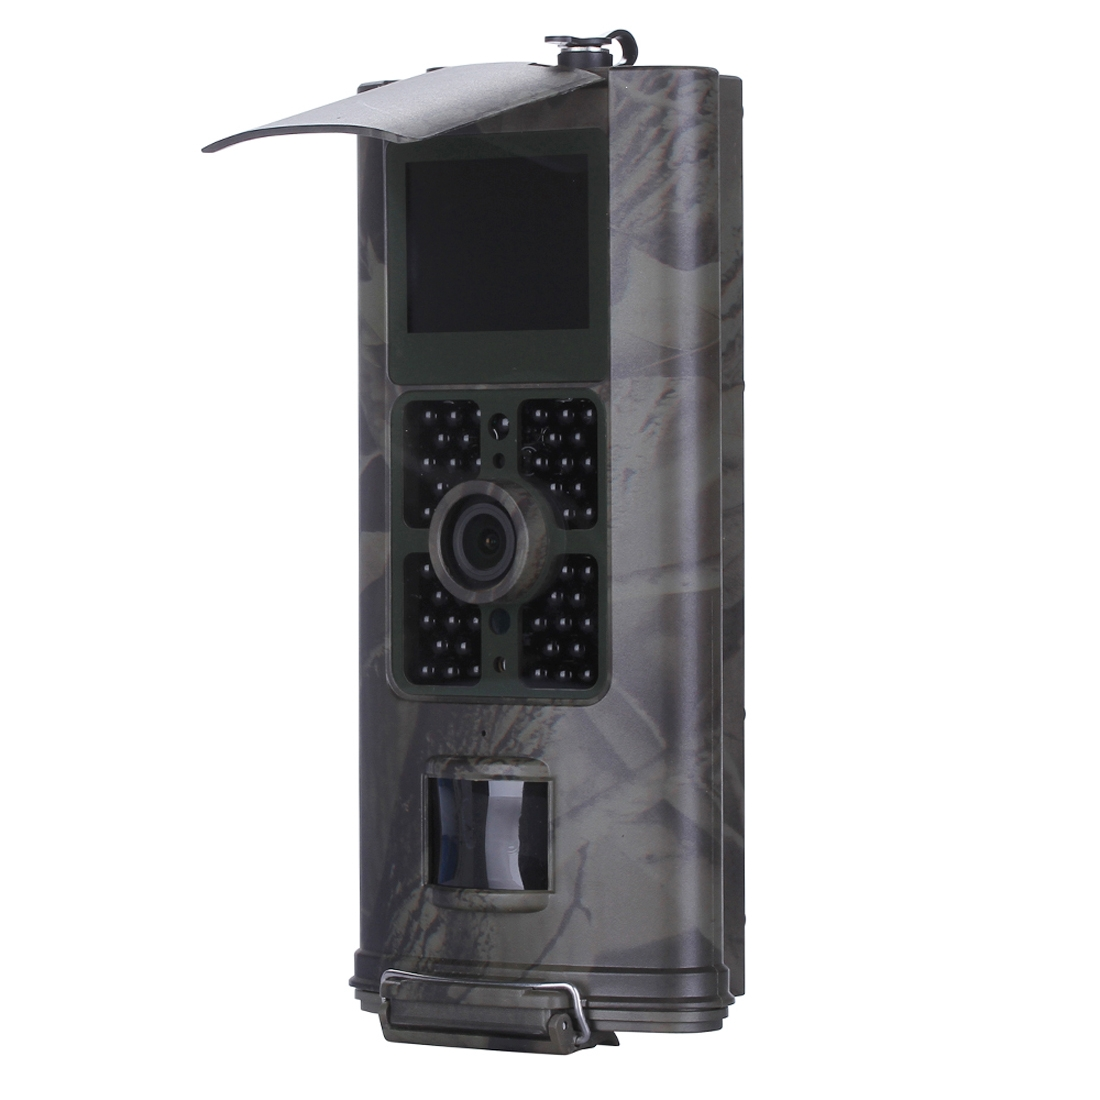 Suntek HC-700A 2.0 inch LCD 16MP Waterproof IR Night Vision Security Hunting Trail Camera, 120 Degree Wide Angle